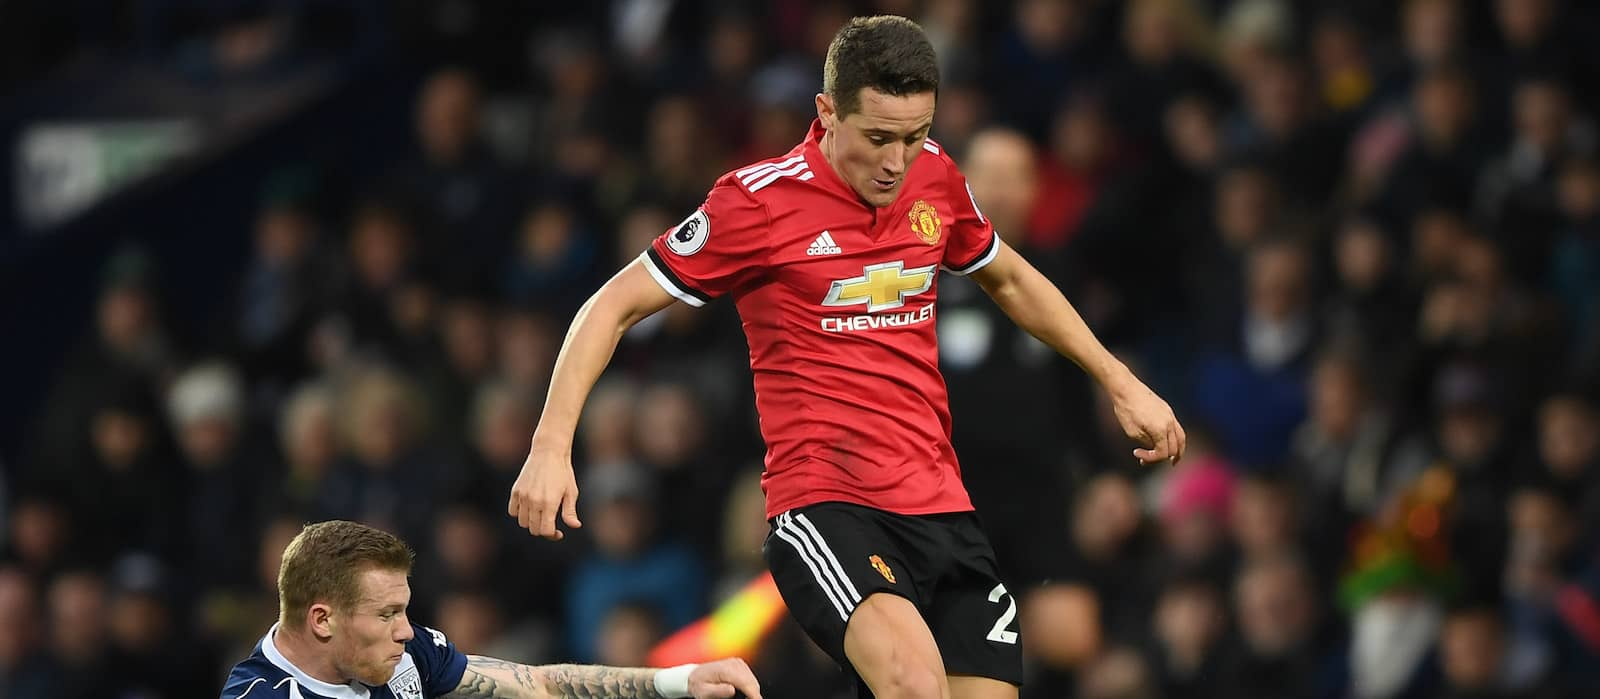 Barcelona to consider making another move for Manchester United midfielder Ander Herrera – report